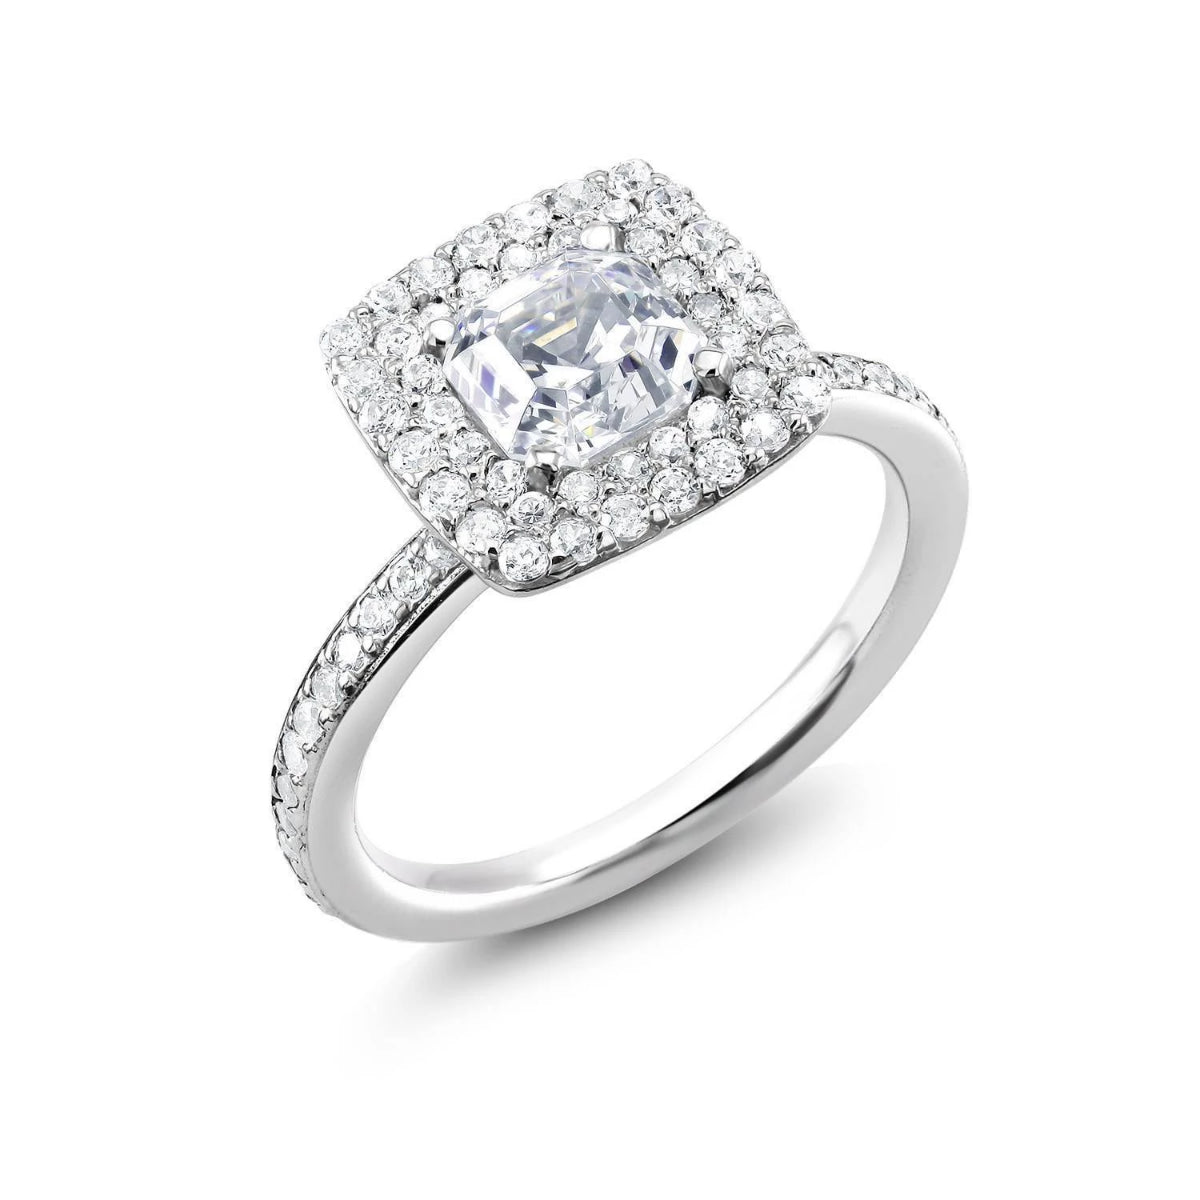 platinum ring engagement ctw product gia diamond cut wantmydiamond gold certified rings diamonds asscher color carat i